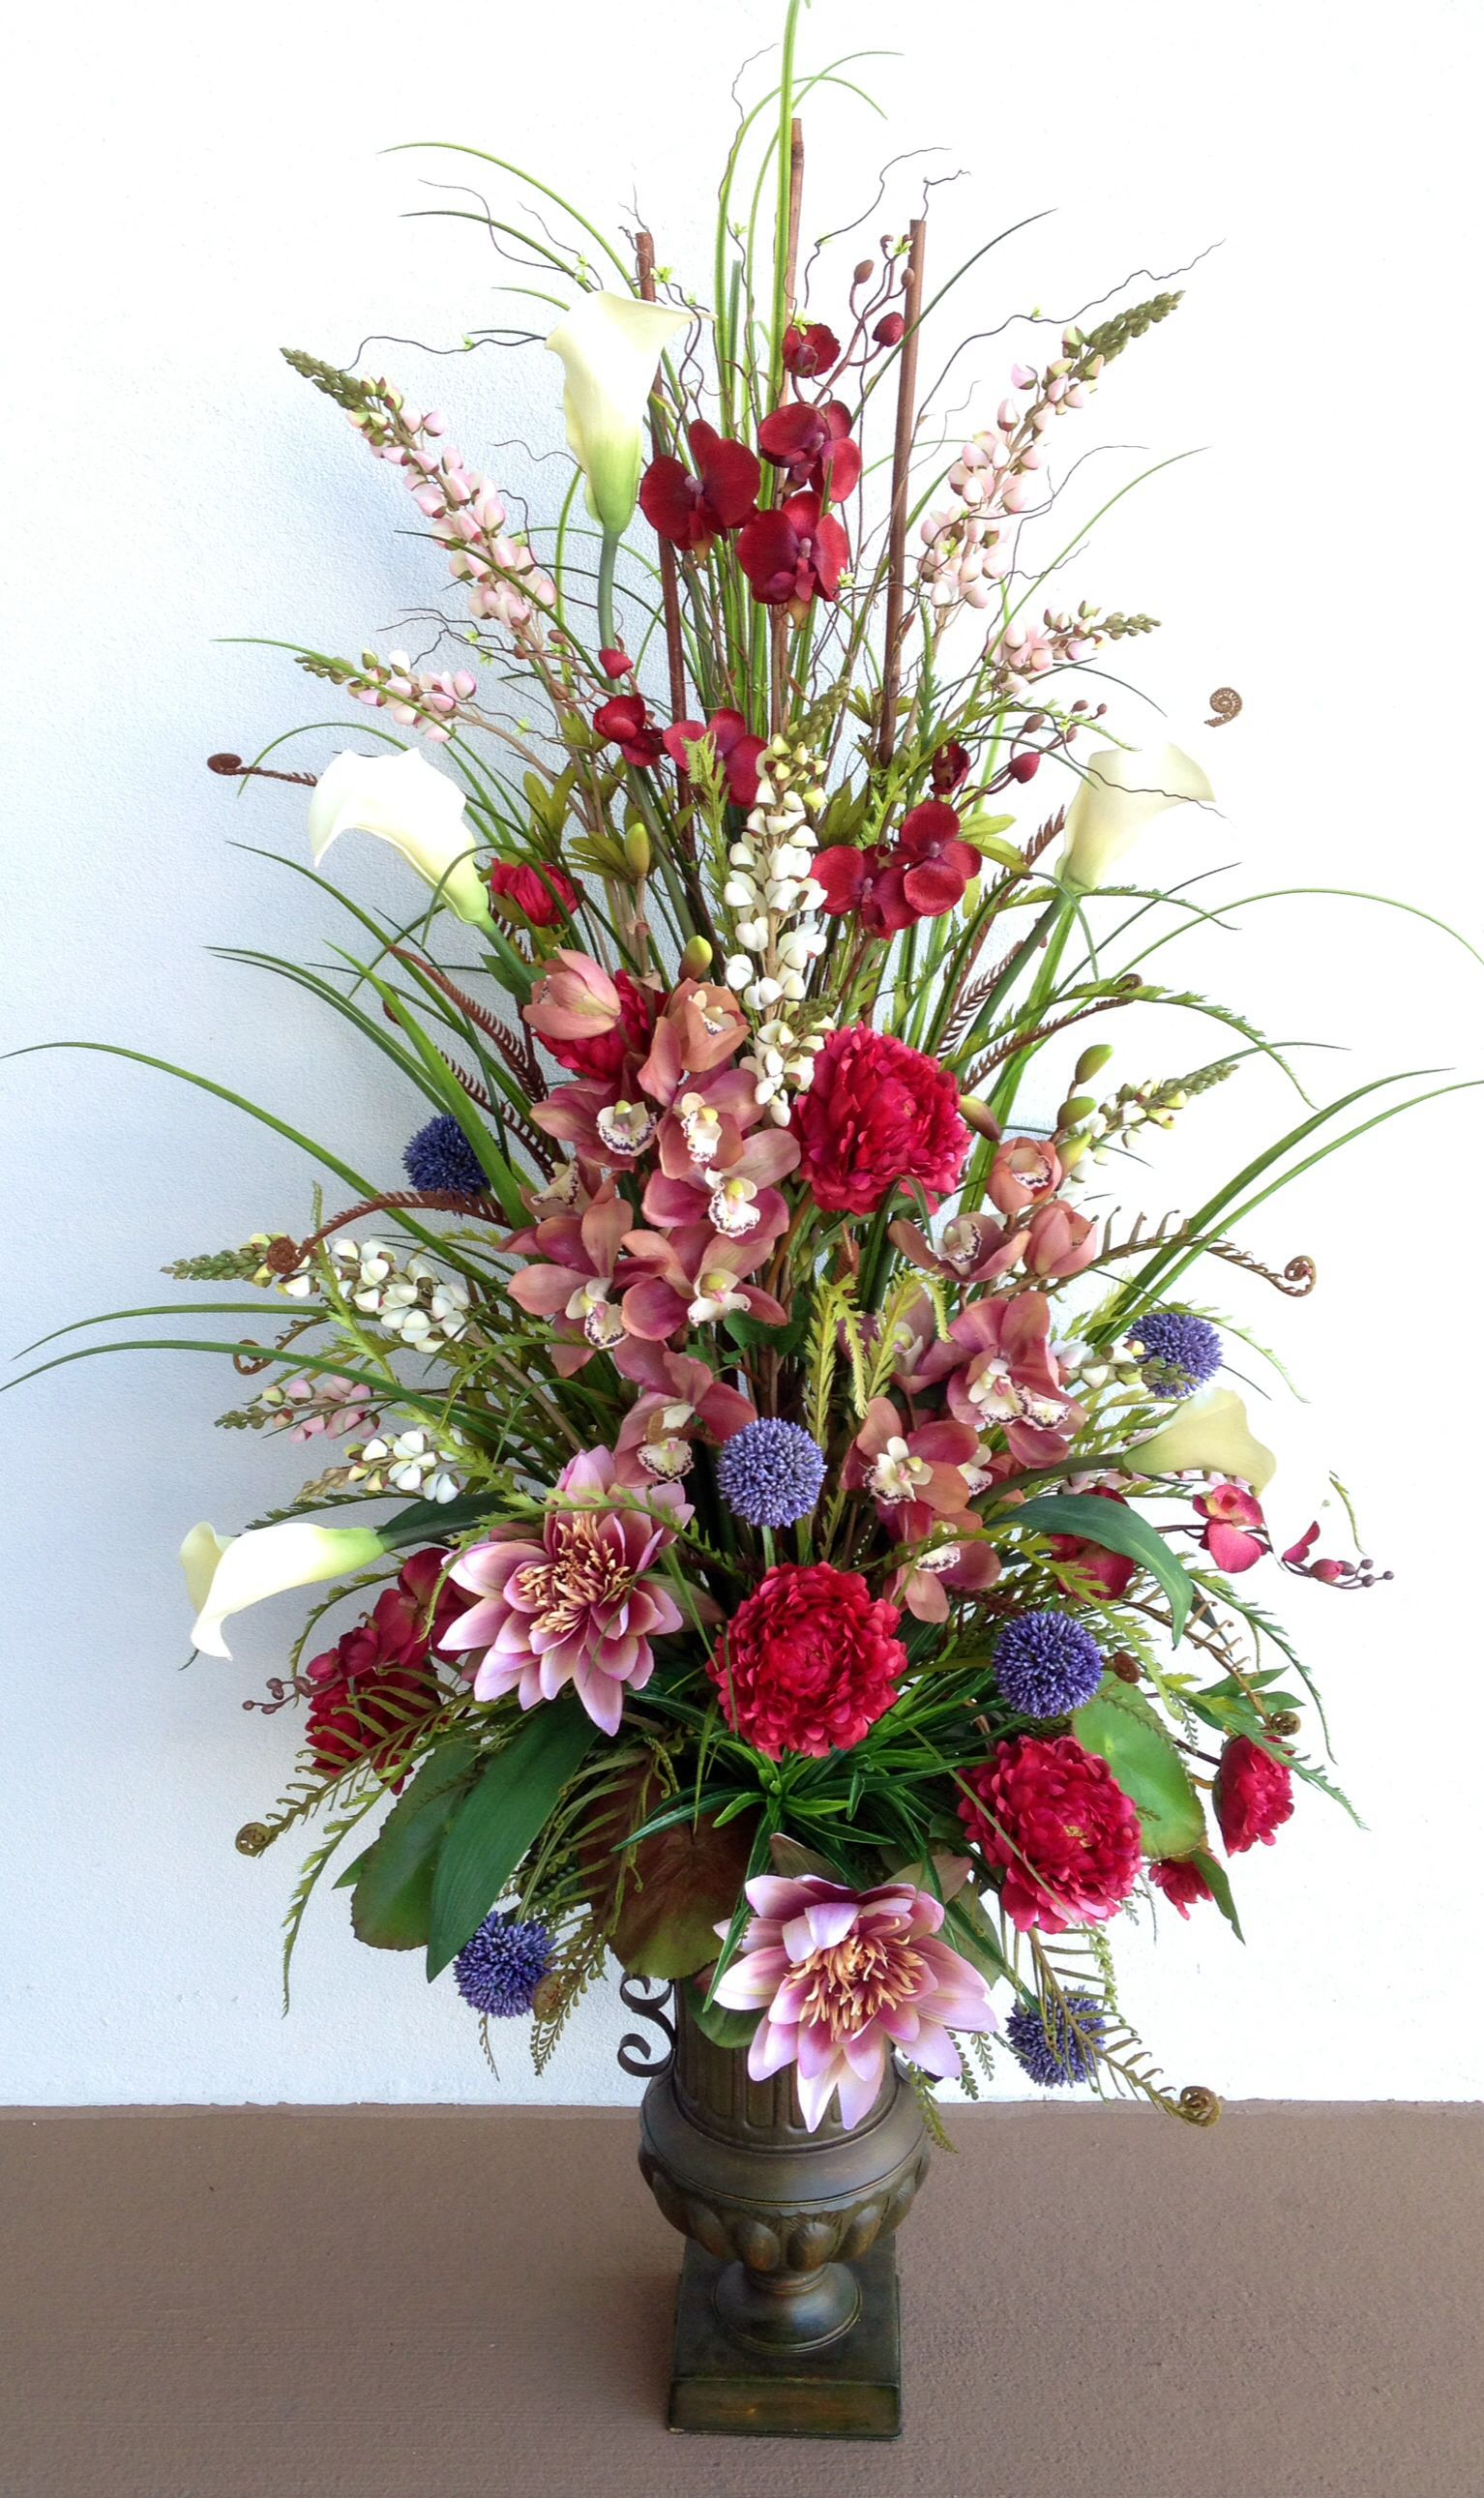 Five Foot Tall Silk Fl Arrangement In Metal Container Designed By Arcadia Hone Decor